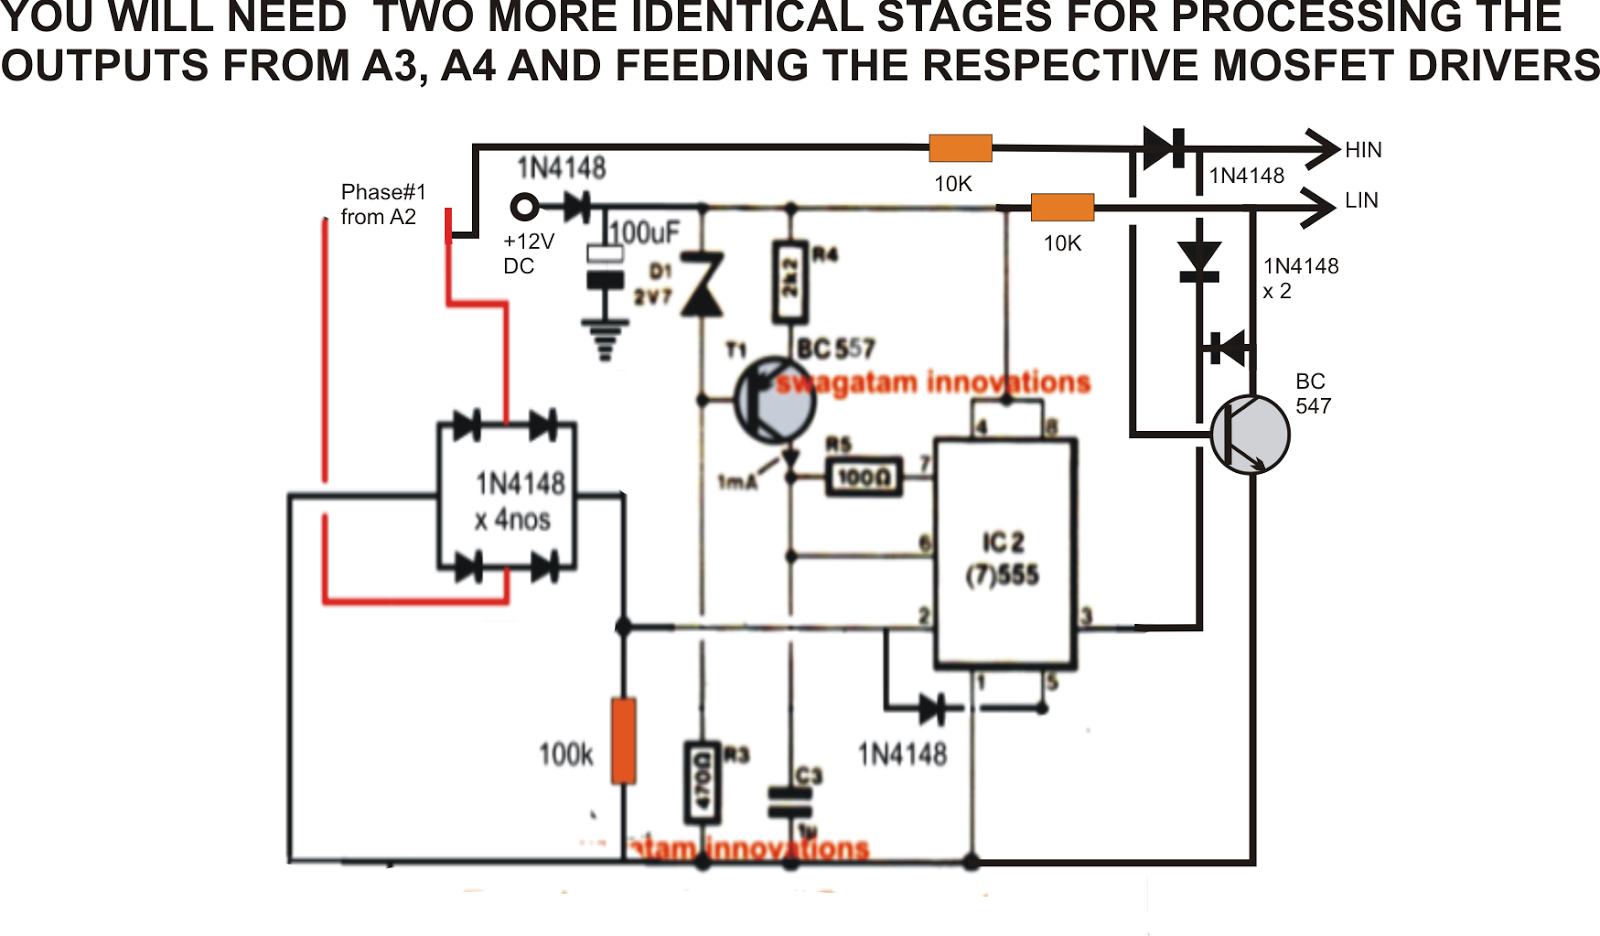 Wye Delta Motor Starter Wiring Diagram further Variable Sd Induction Motor further 2 Phase Wiring For Dummies furthermore Wiring Diagram Besides 2 Sd Ac Motor in addition Spa Wiring Diagram Schematic. on 3 phase 2 sd motor wiring diagram